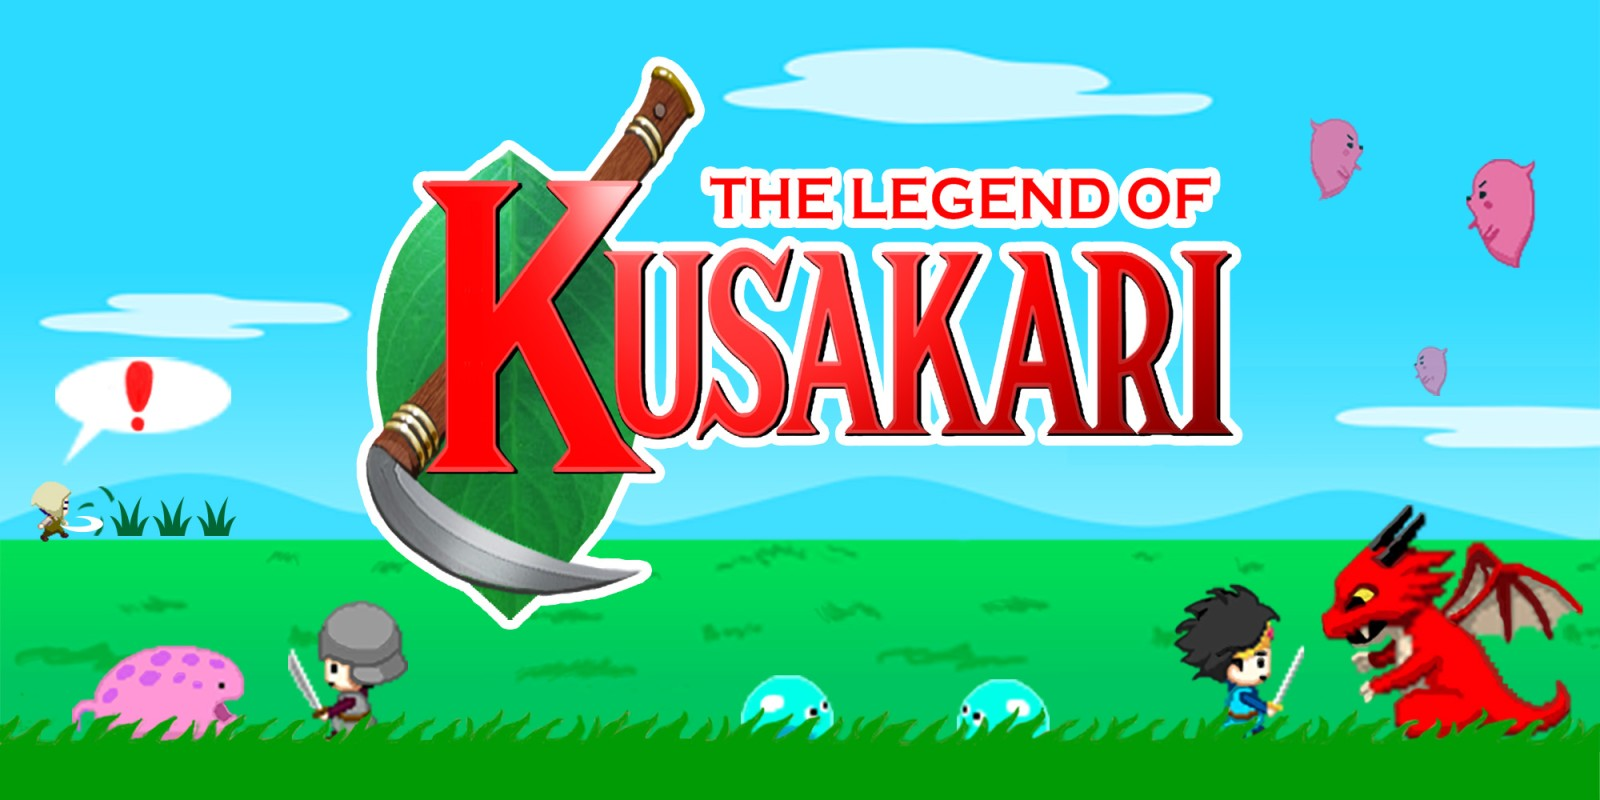 The Legend of Kusakari